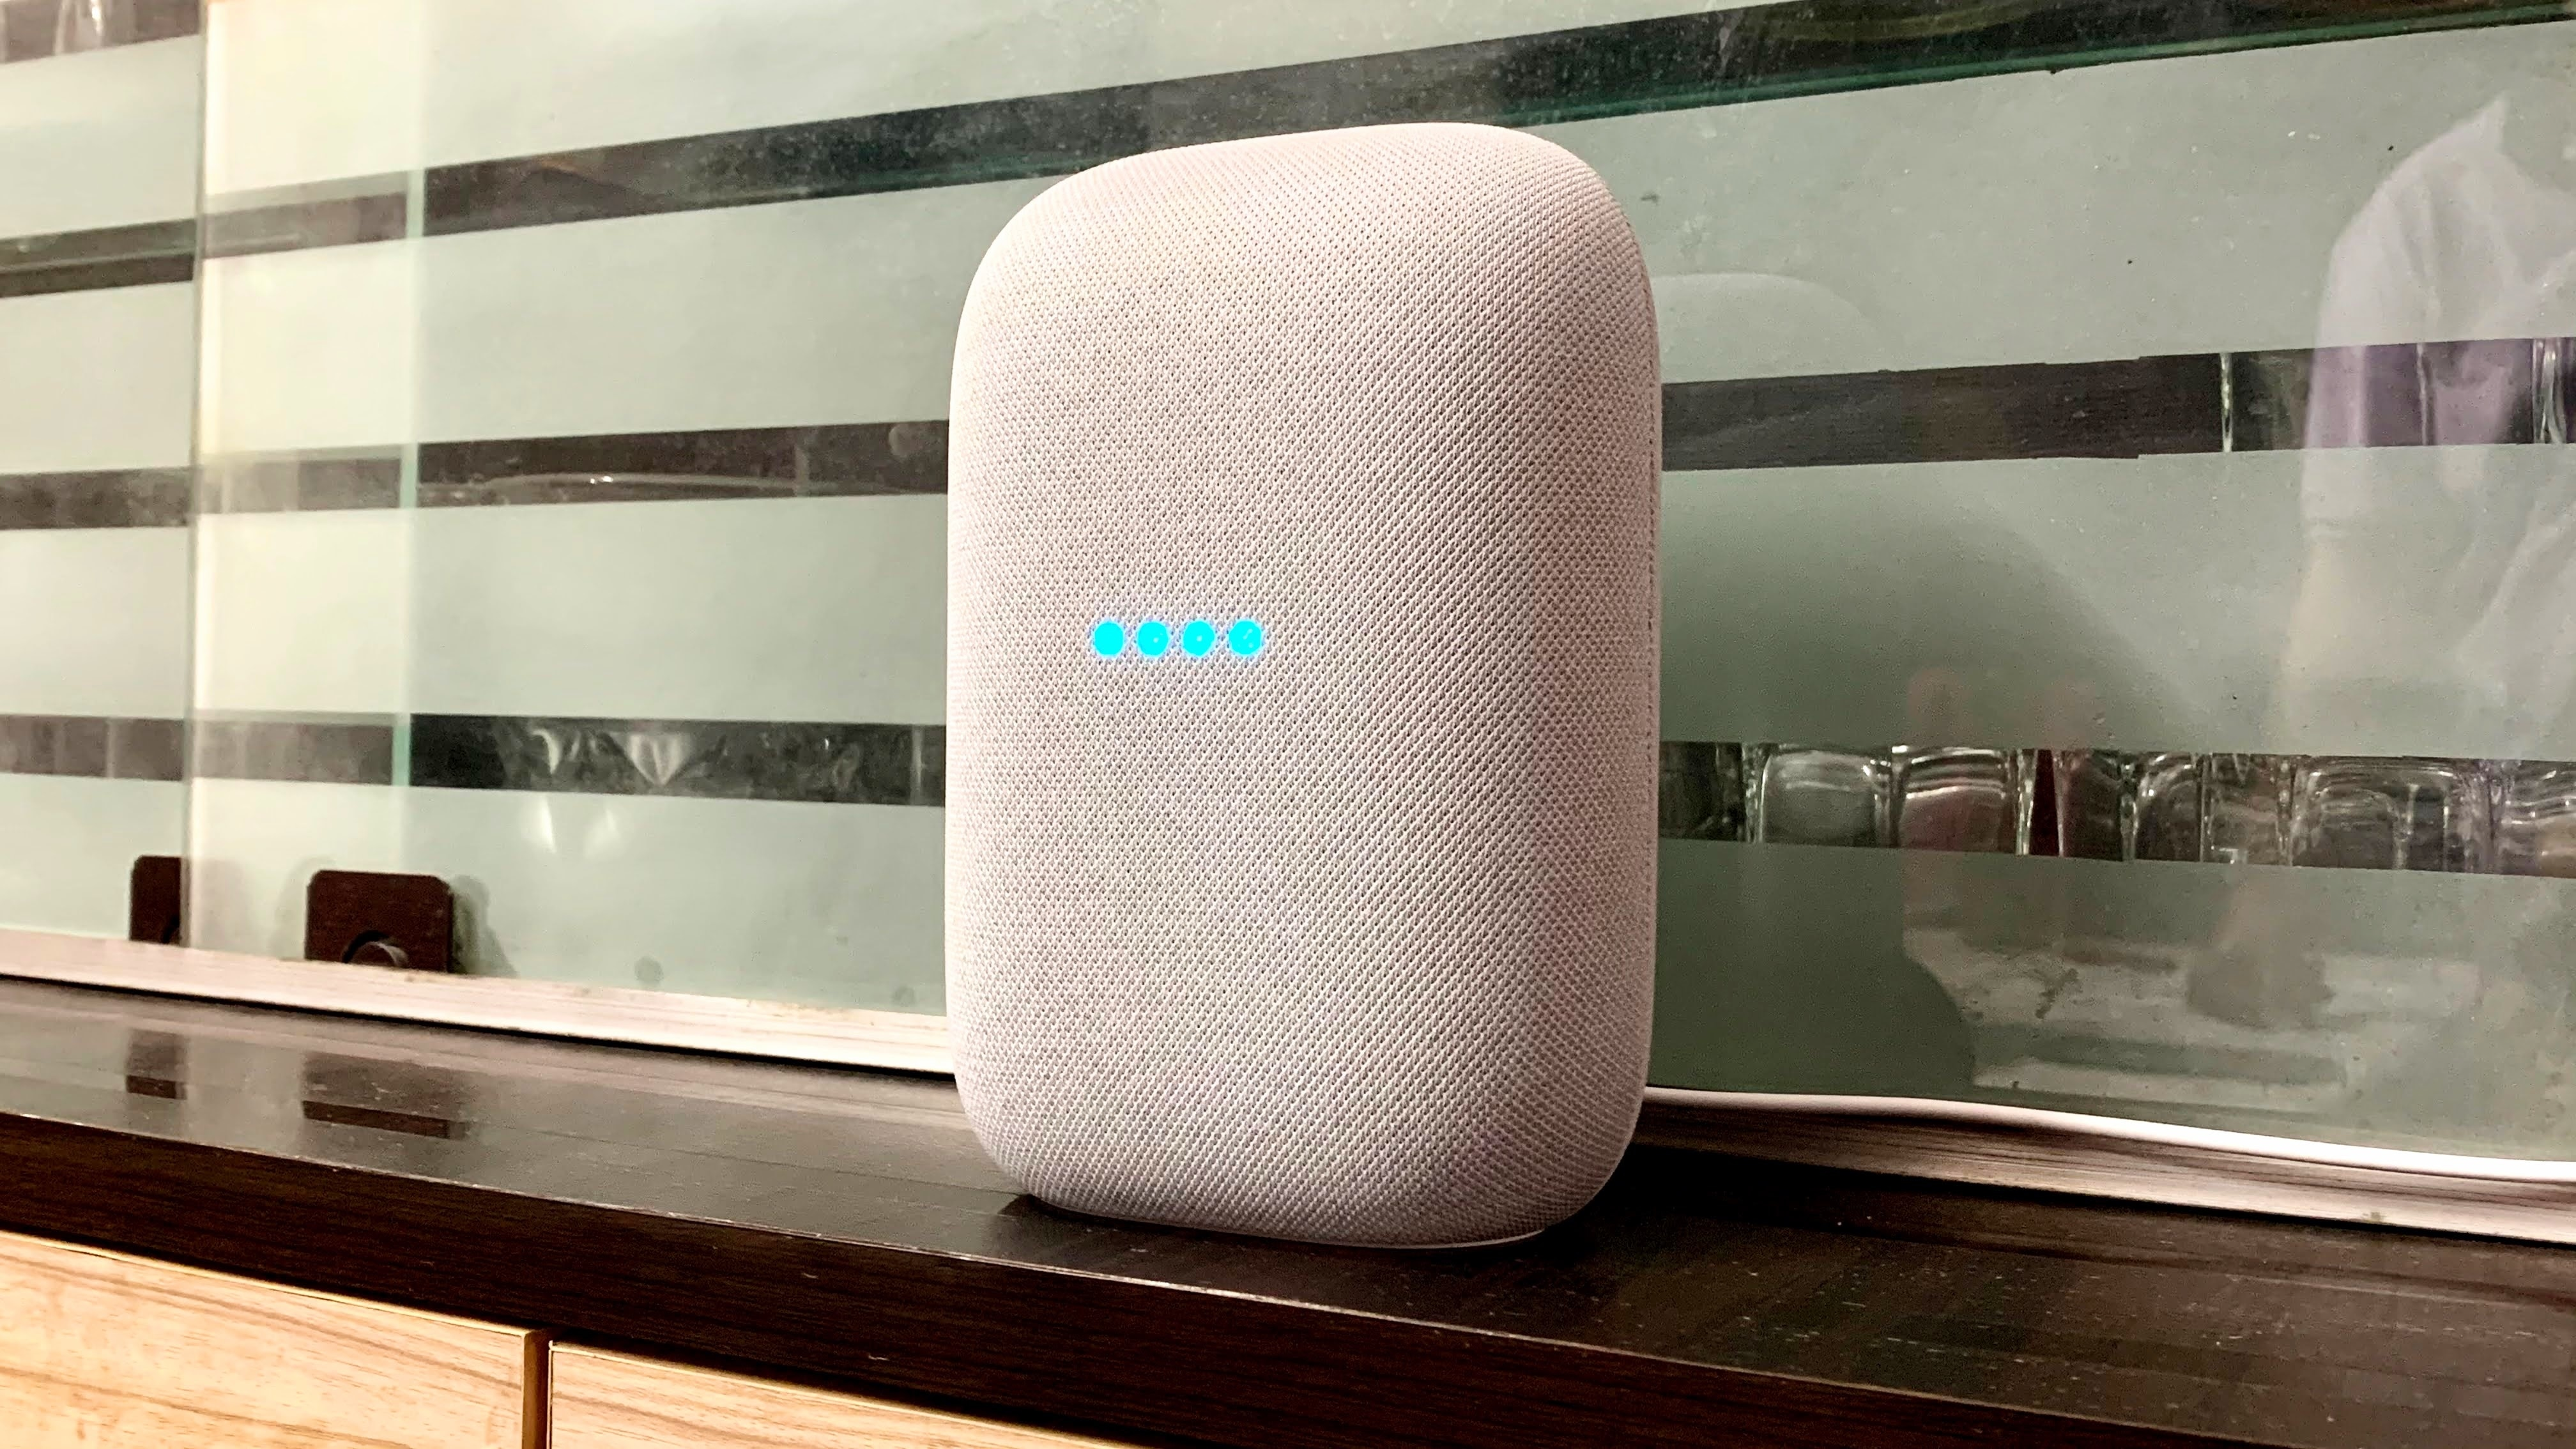 Additionally, it has an Ambient IQ feature that lets Nest Audio also adjust the volume of Assistant, news, podcasts and audiobooks based on the background noise in users' homes.